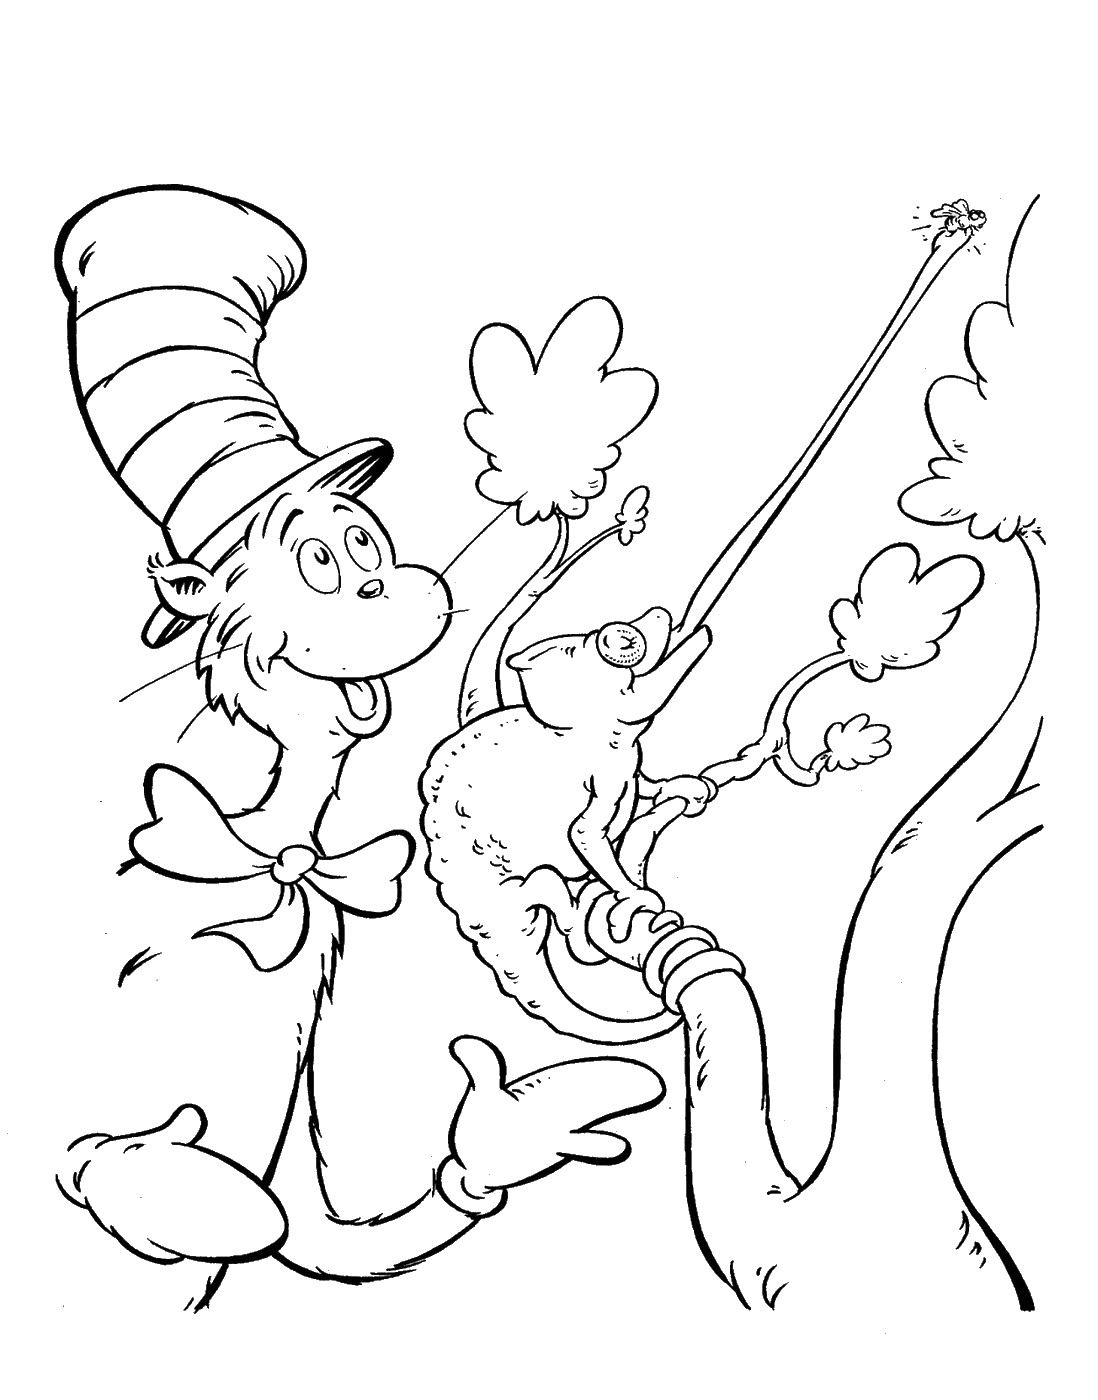 Free Printable Dr Seuss Coloring Pages For Kids | 1400x1098